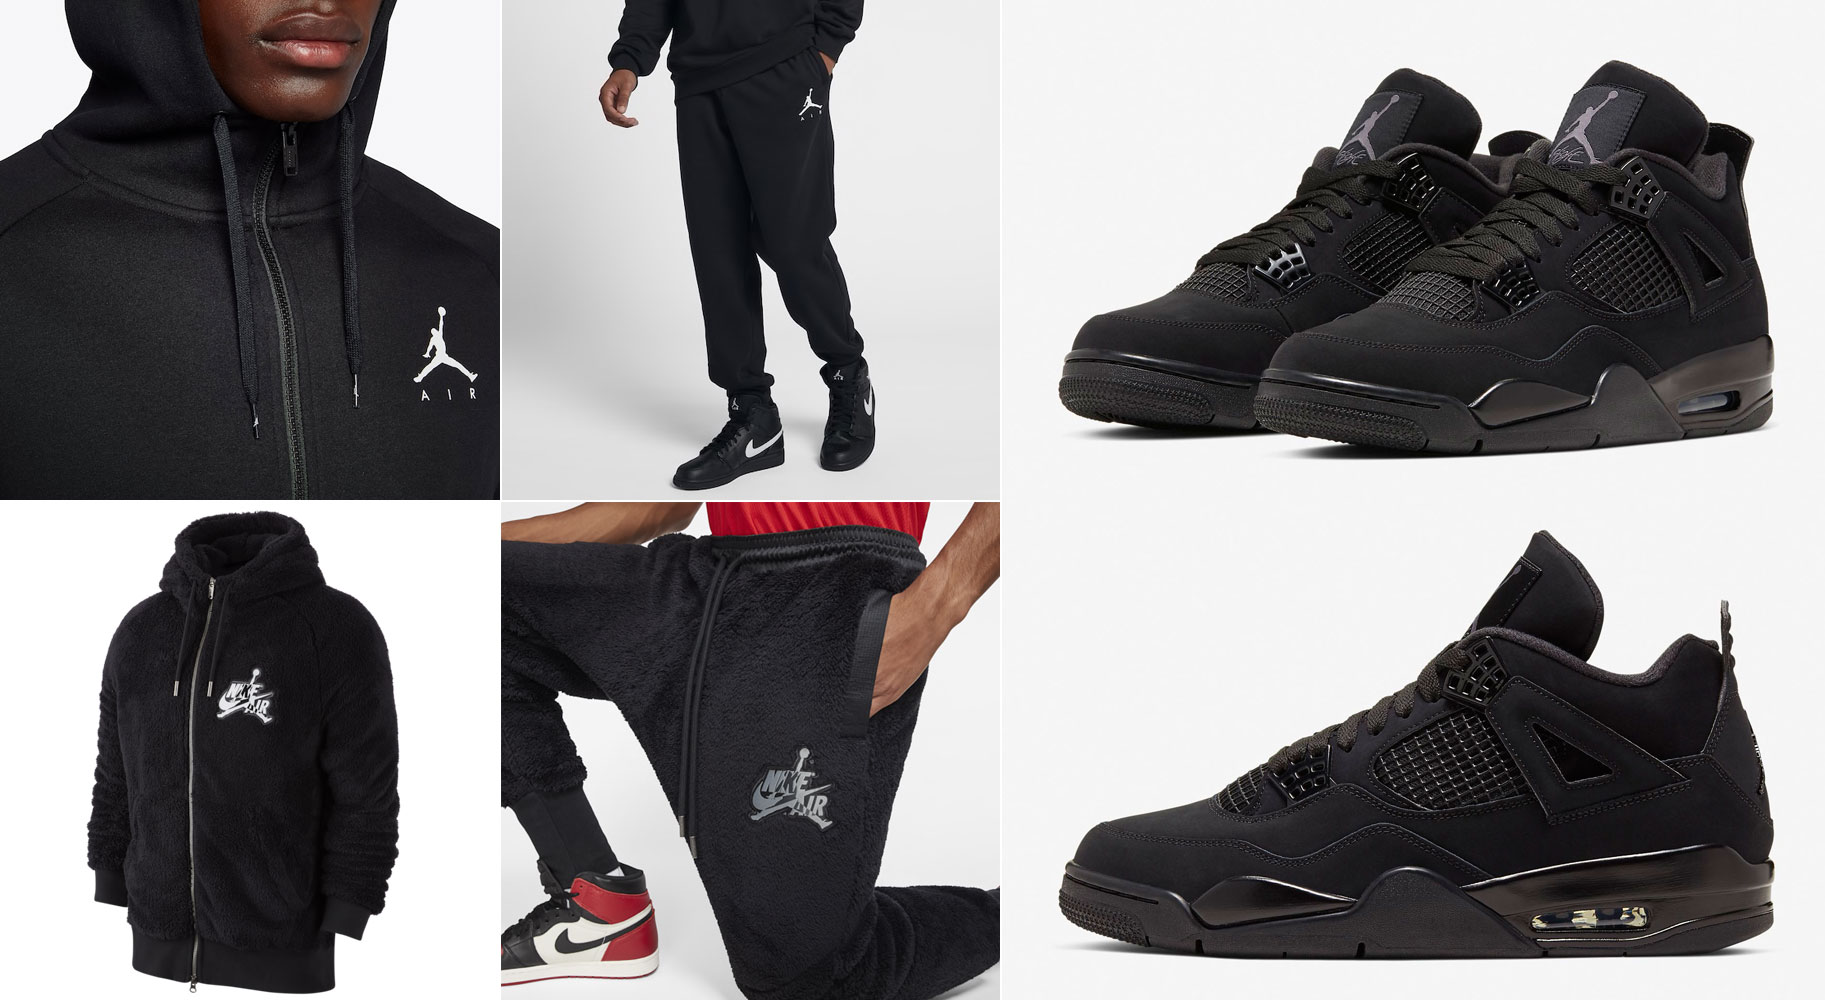 air-jordan-4-black-cat-2020-hoodies-and-jogger-pants